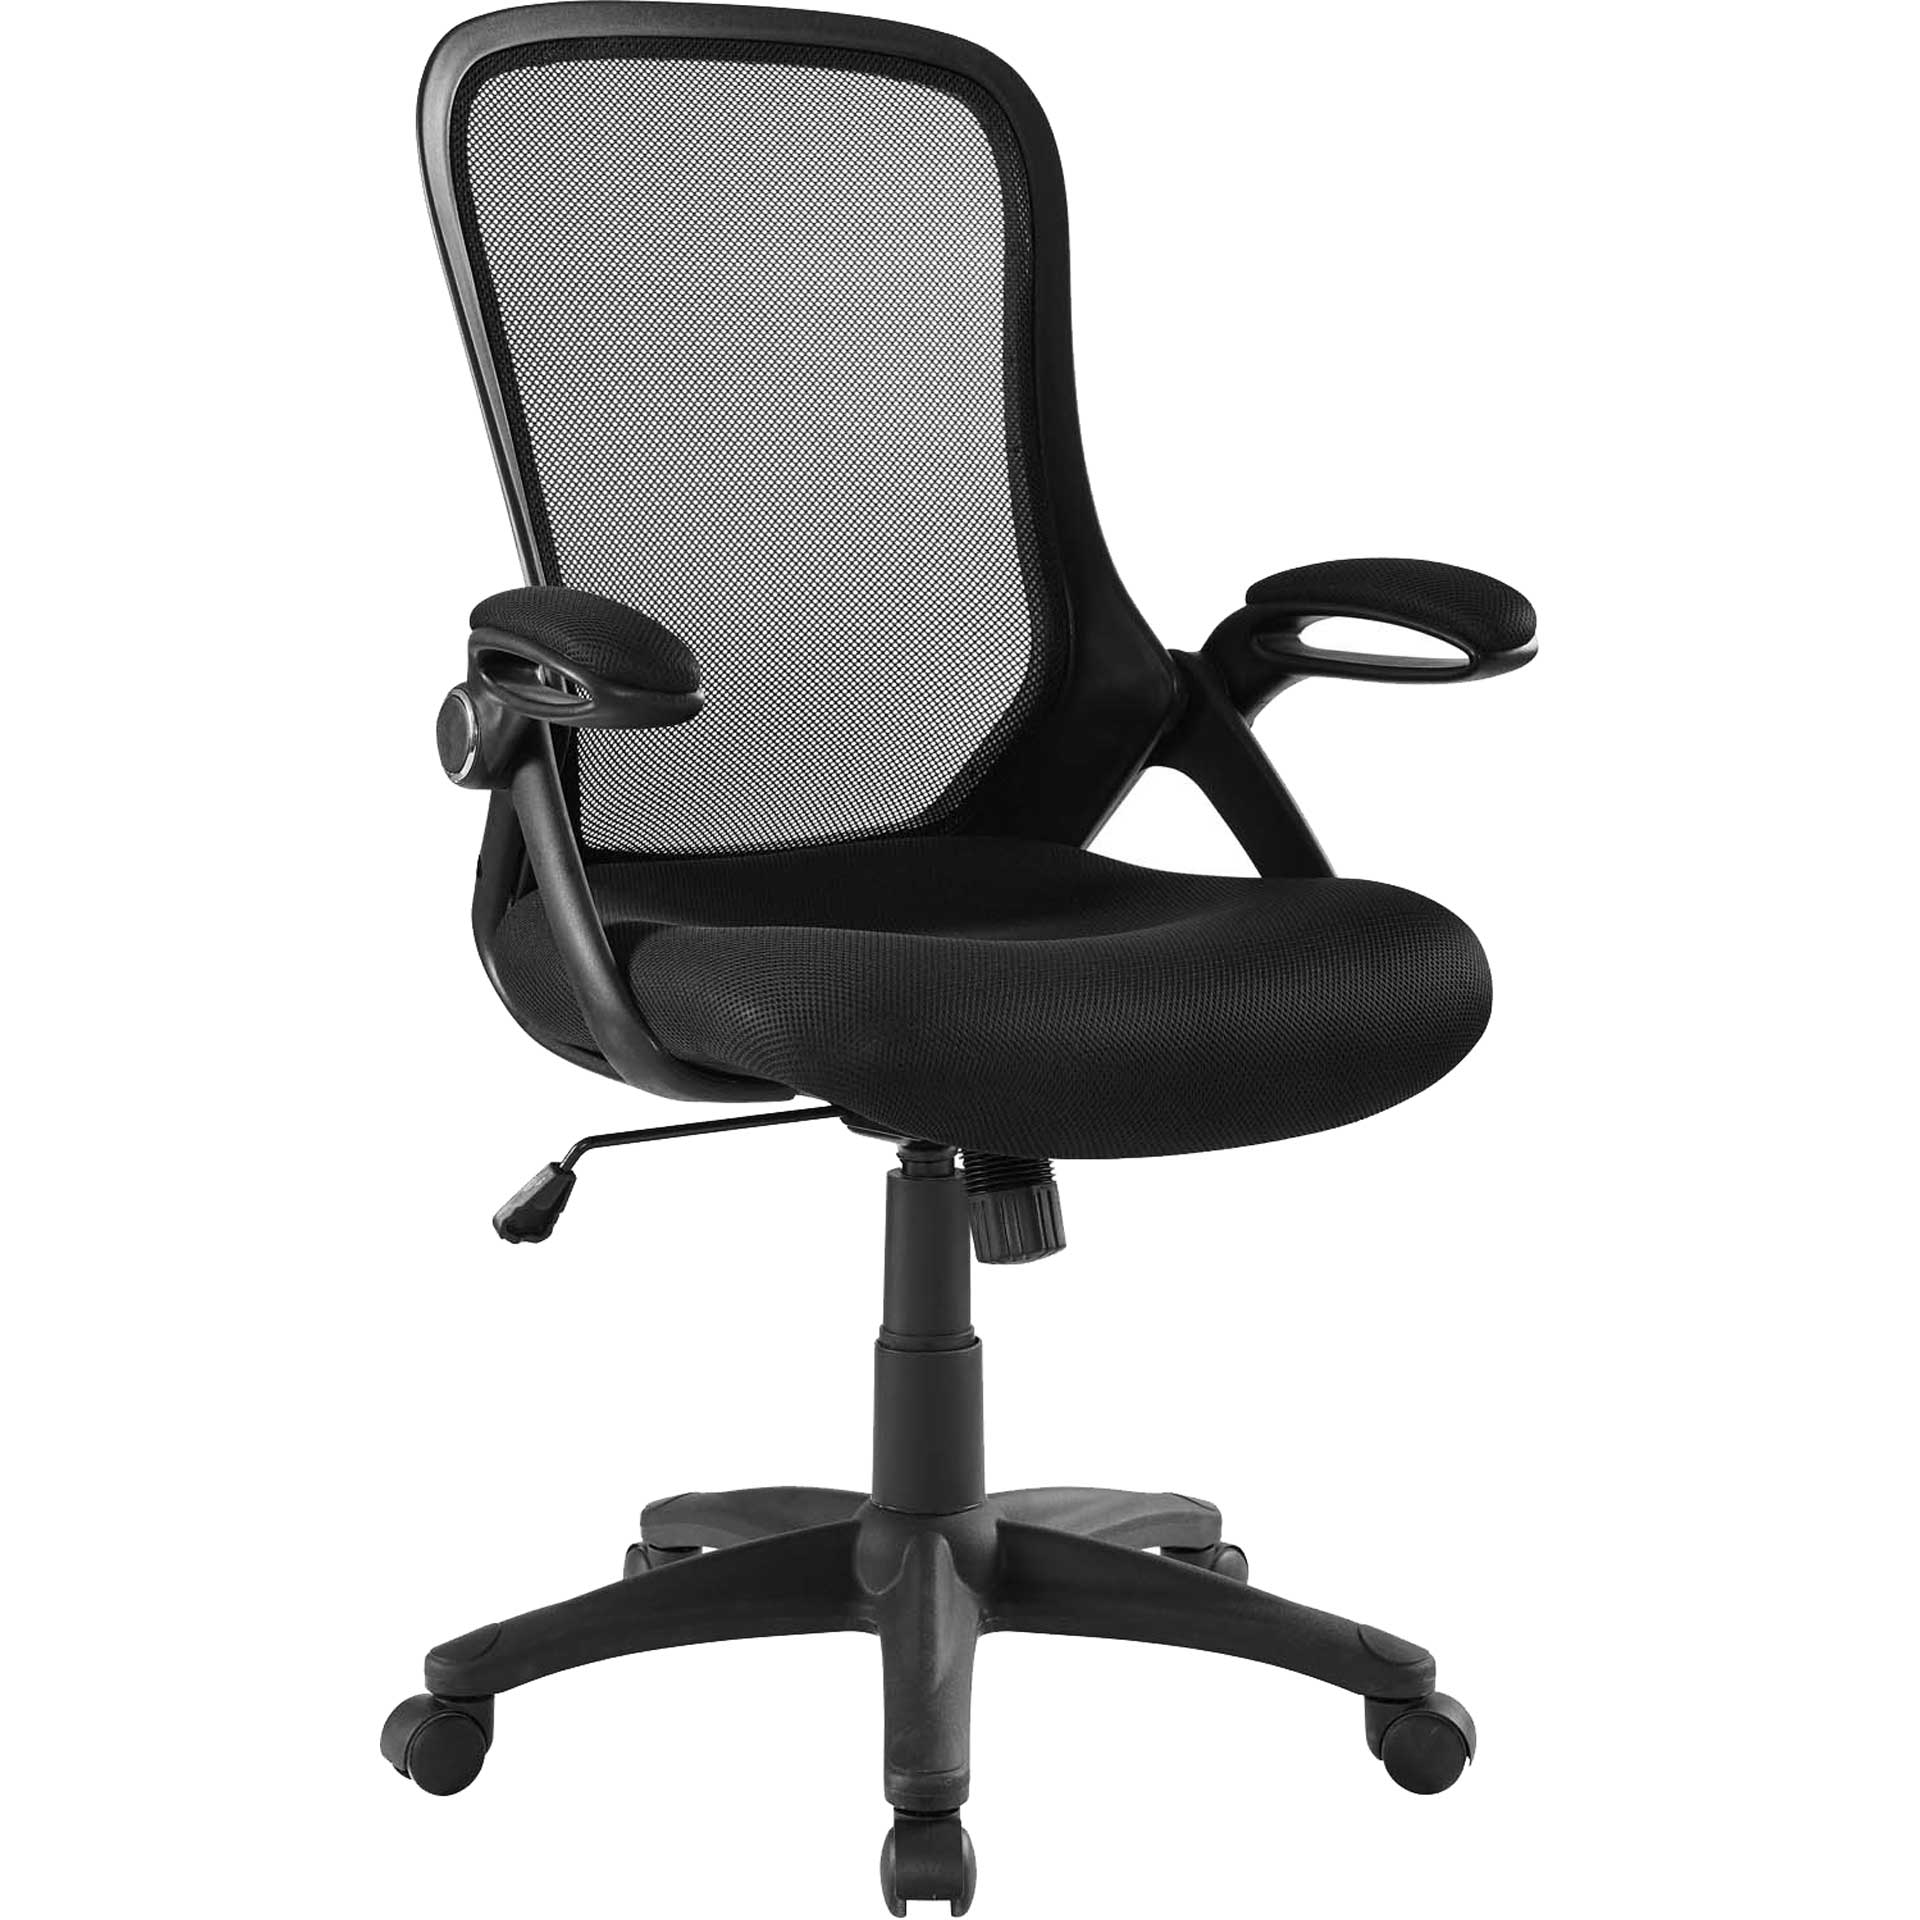 Abram Mesh Office Chair Black